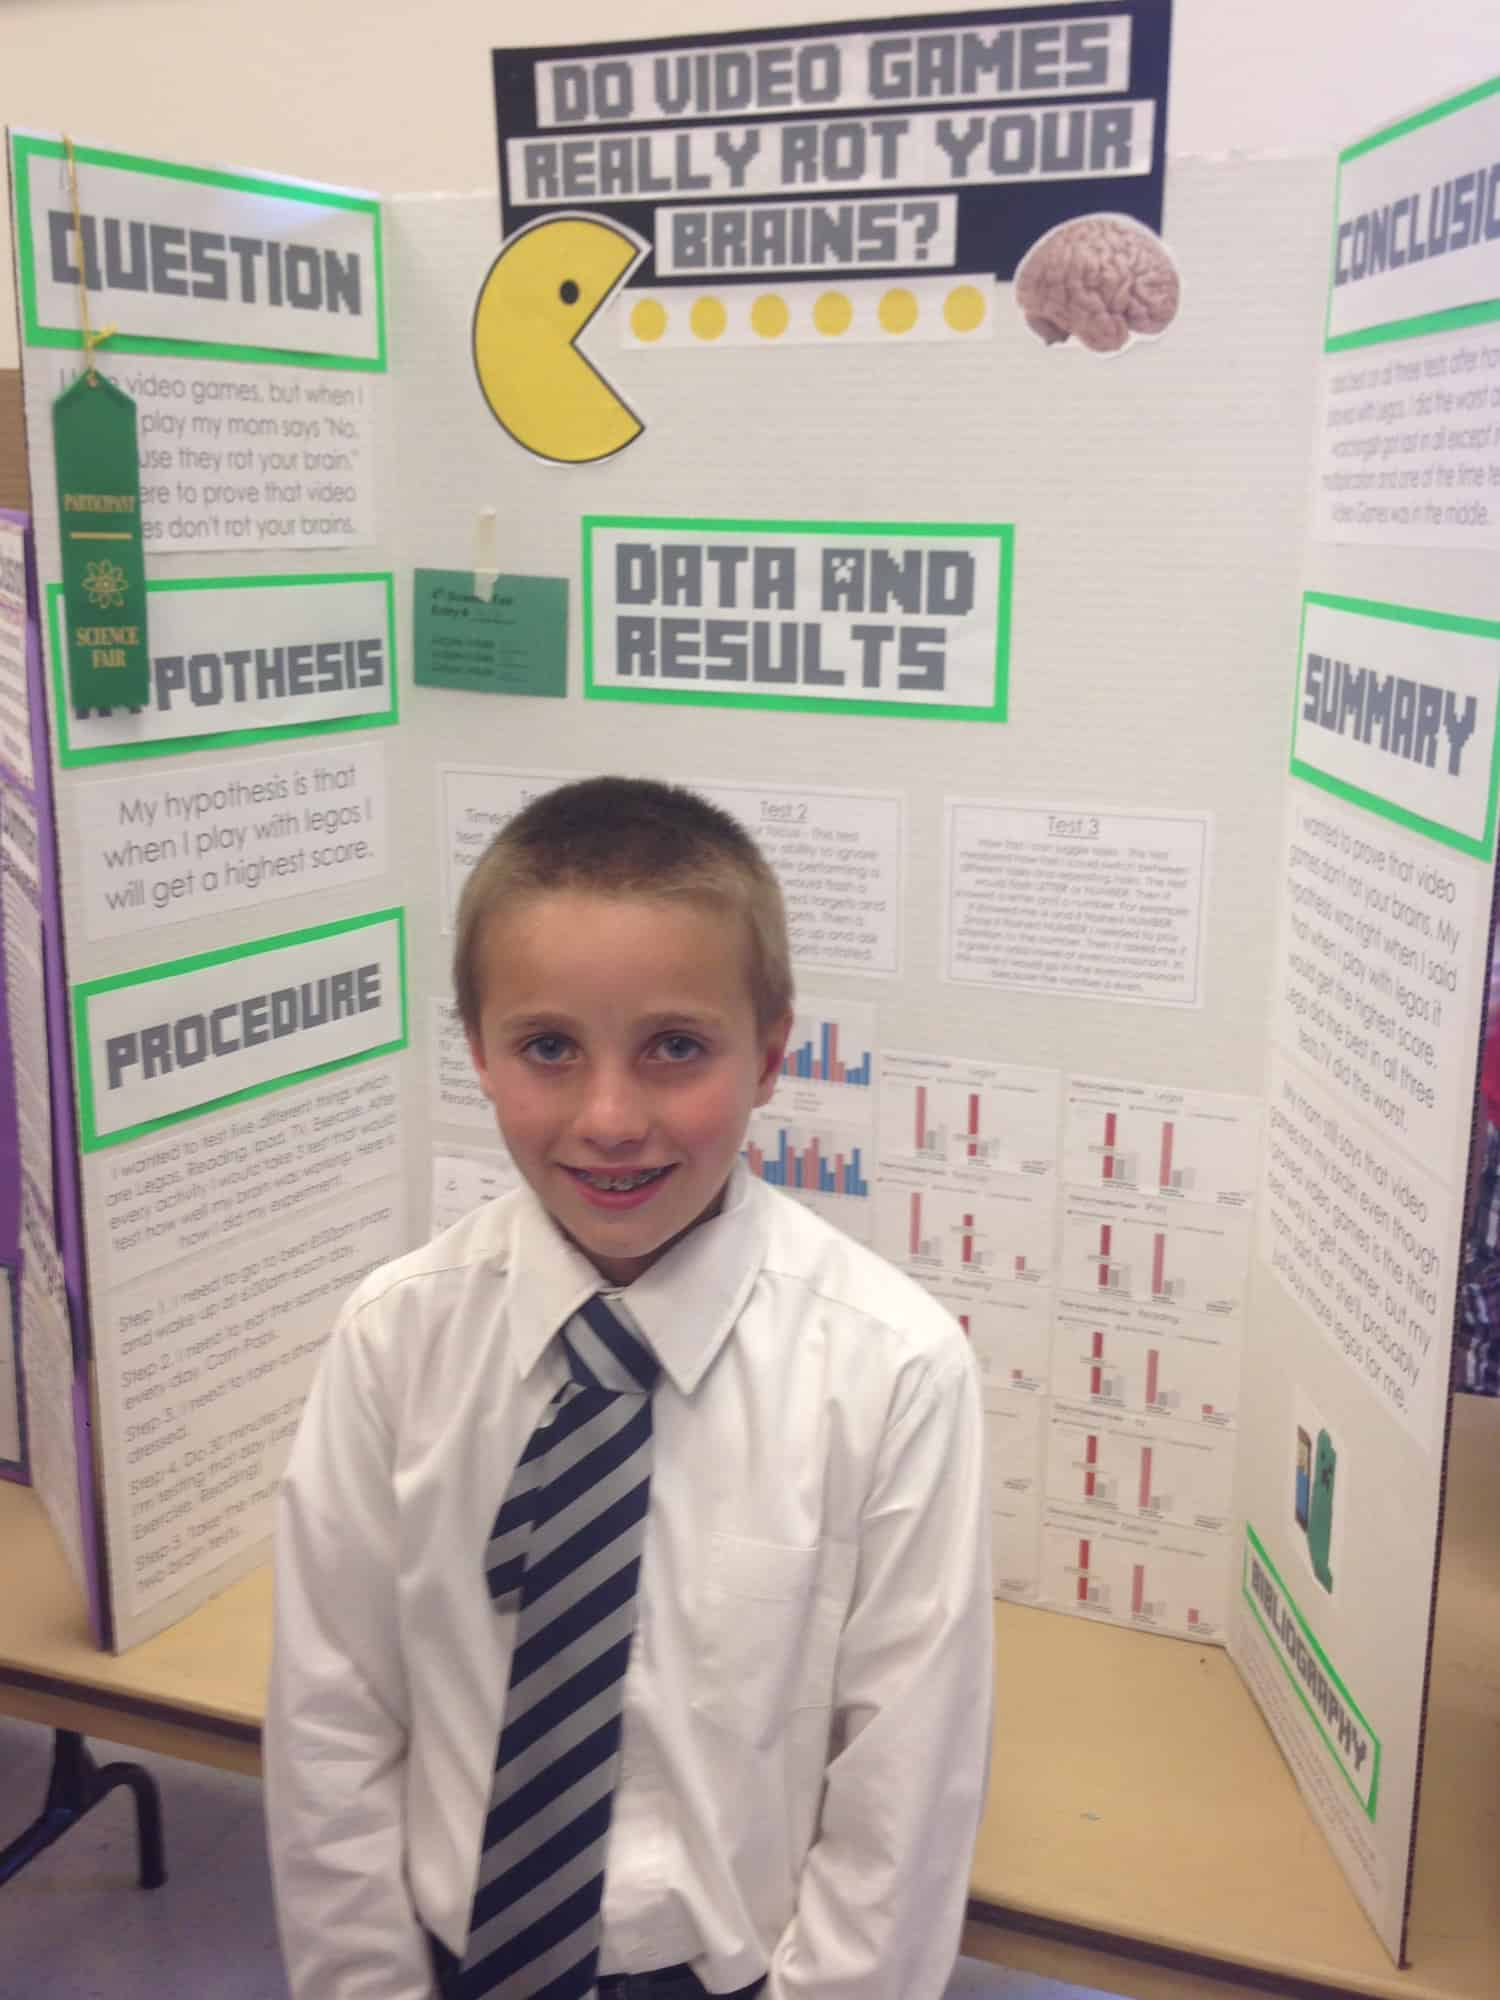 science fair projects project winning games rock rot board funny brain game experiments really boards activities overthebigmoon awesome brains kid